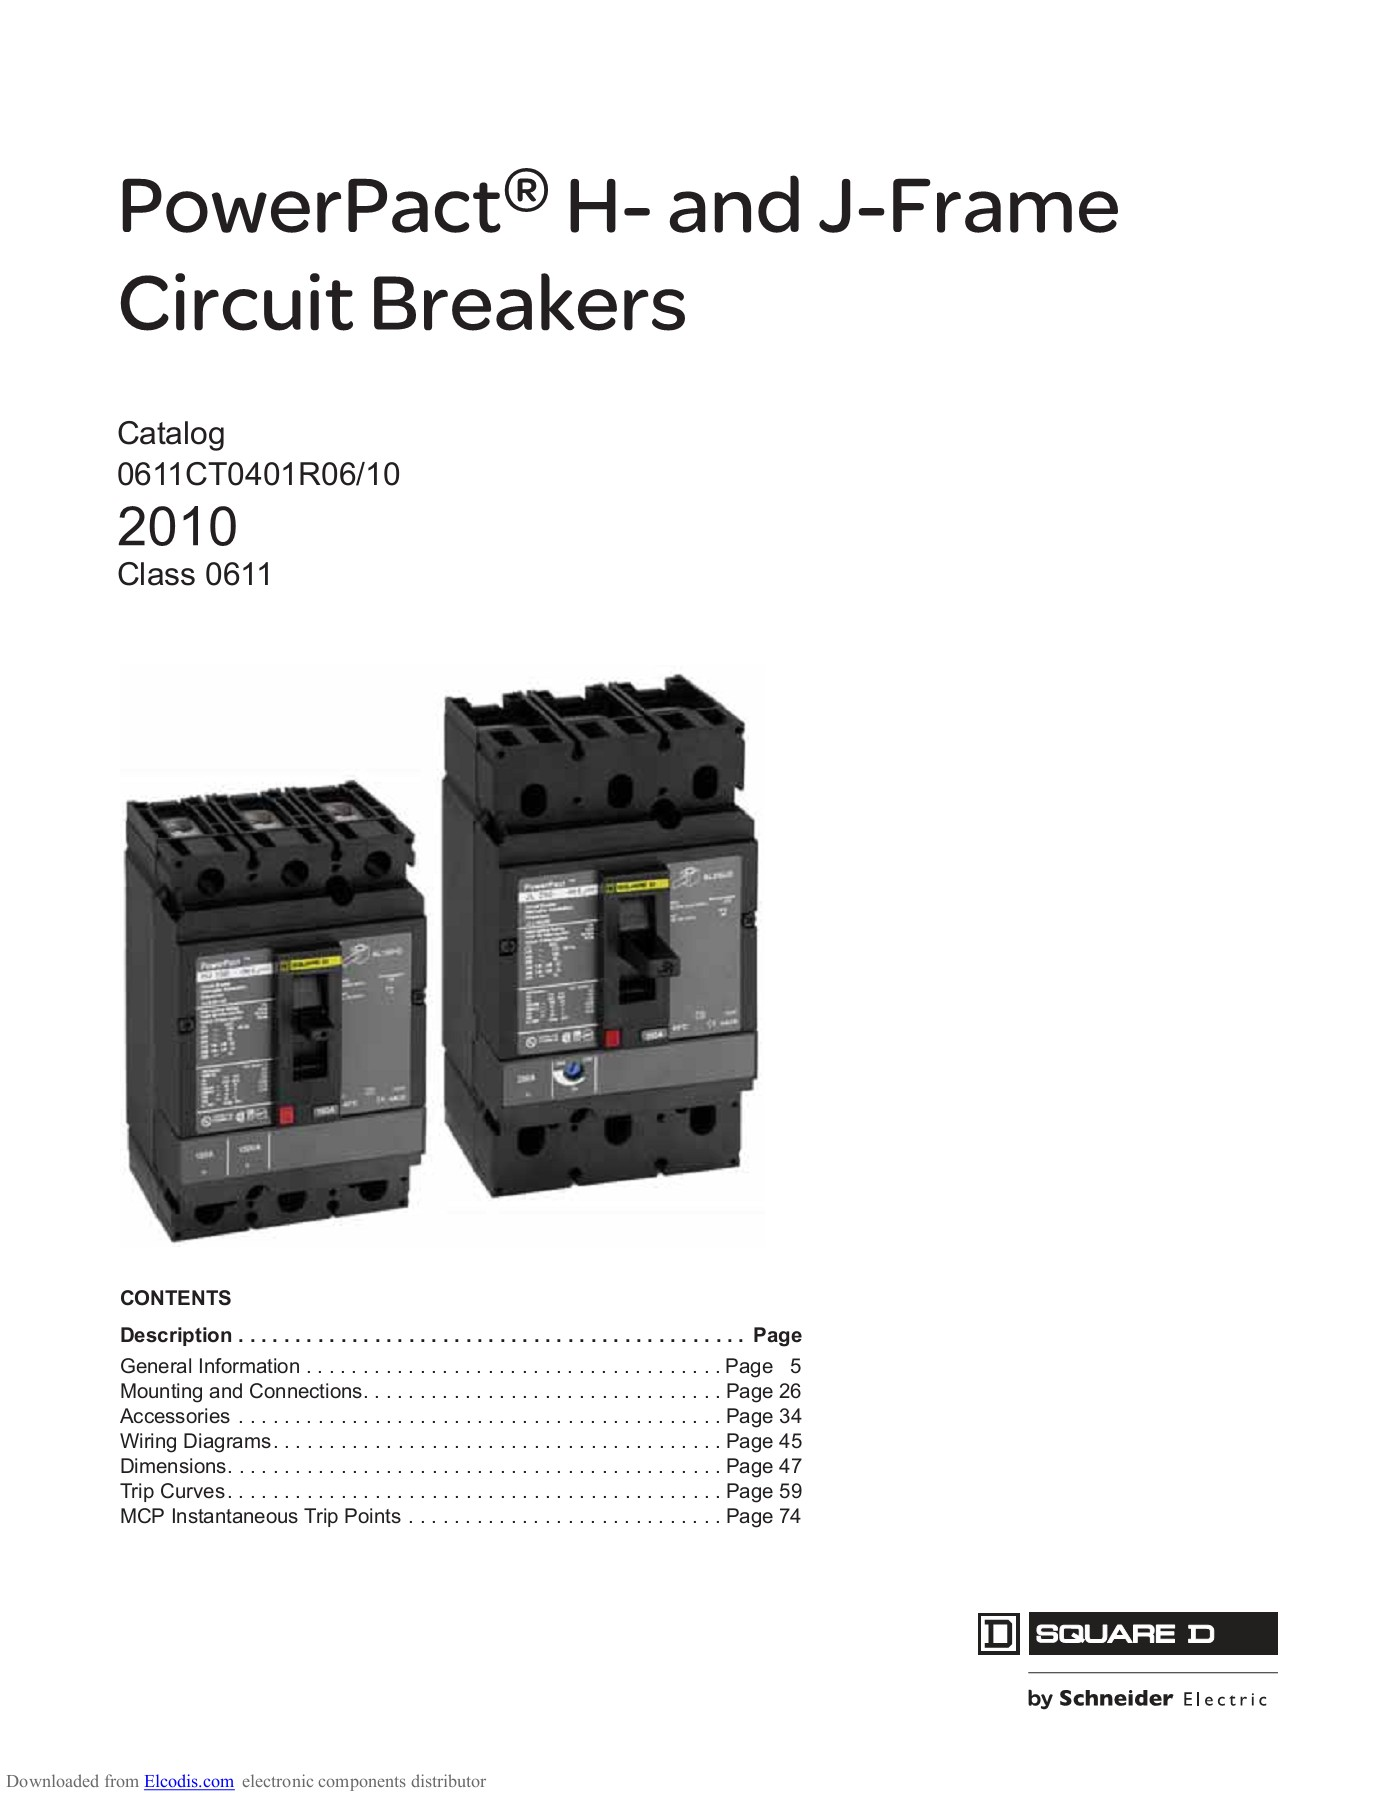 hight resolution of powerpact h and j frame circuit breakers catalog 0611ct0401r06 10 2010 class 0611 contents description